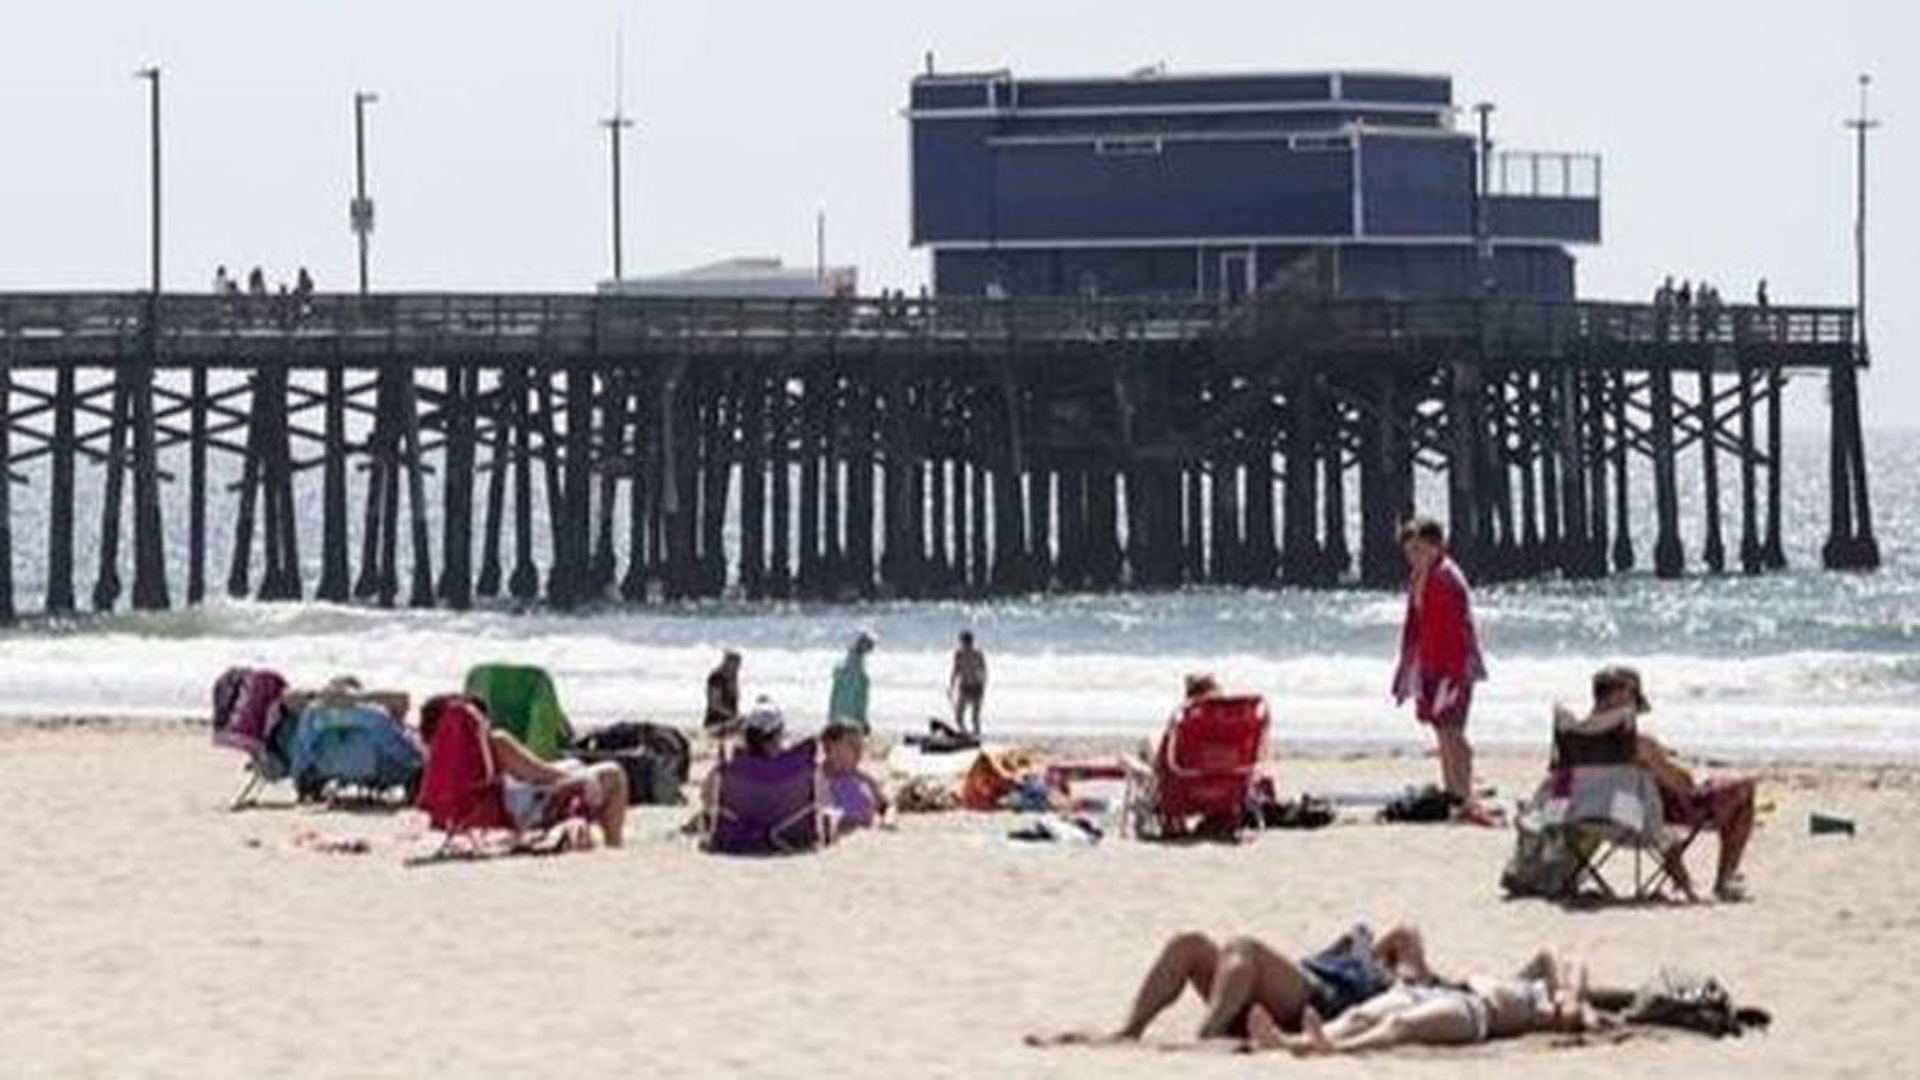 A body was recovered on July 9, 2019, in the water between 24th and 28th streets in Newport Beach, authorities said. (Credit: Los Angeles Times)